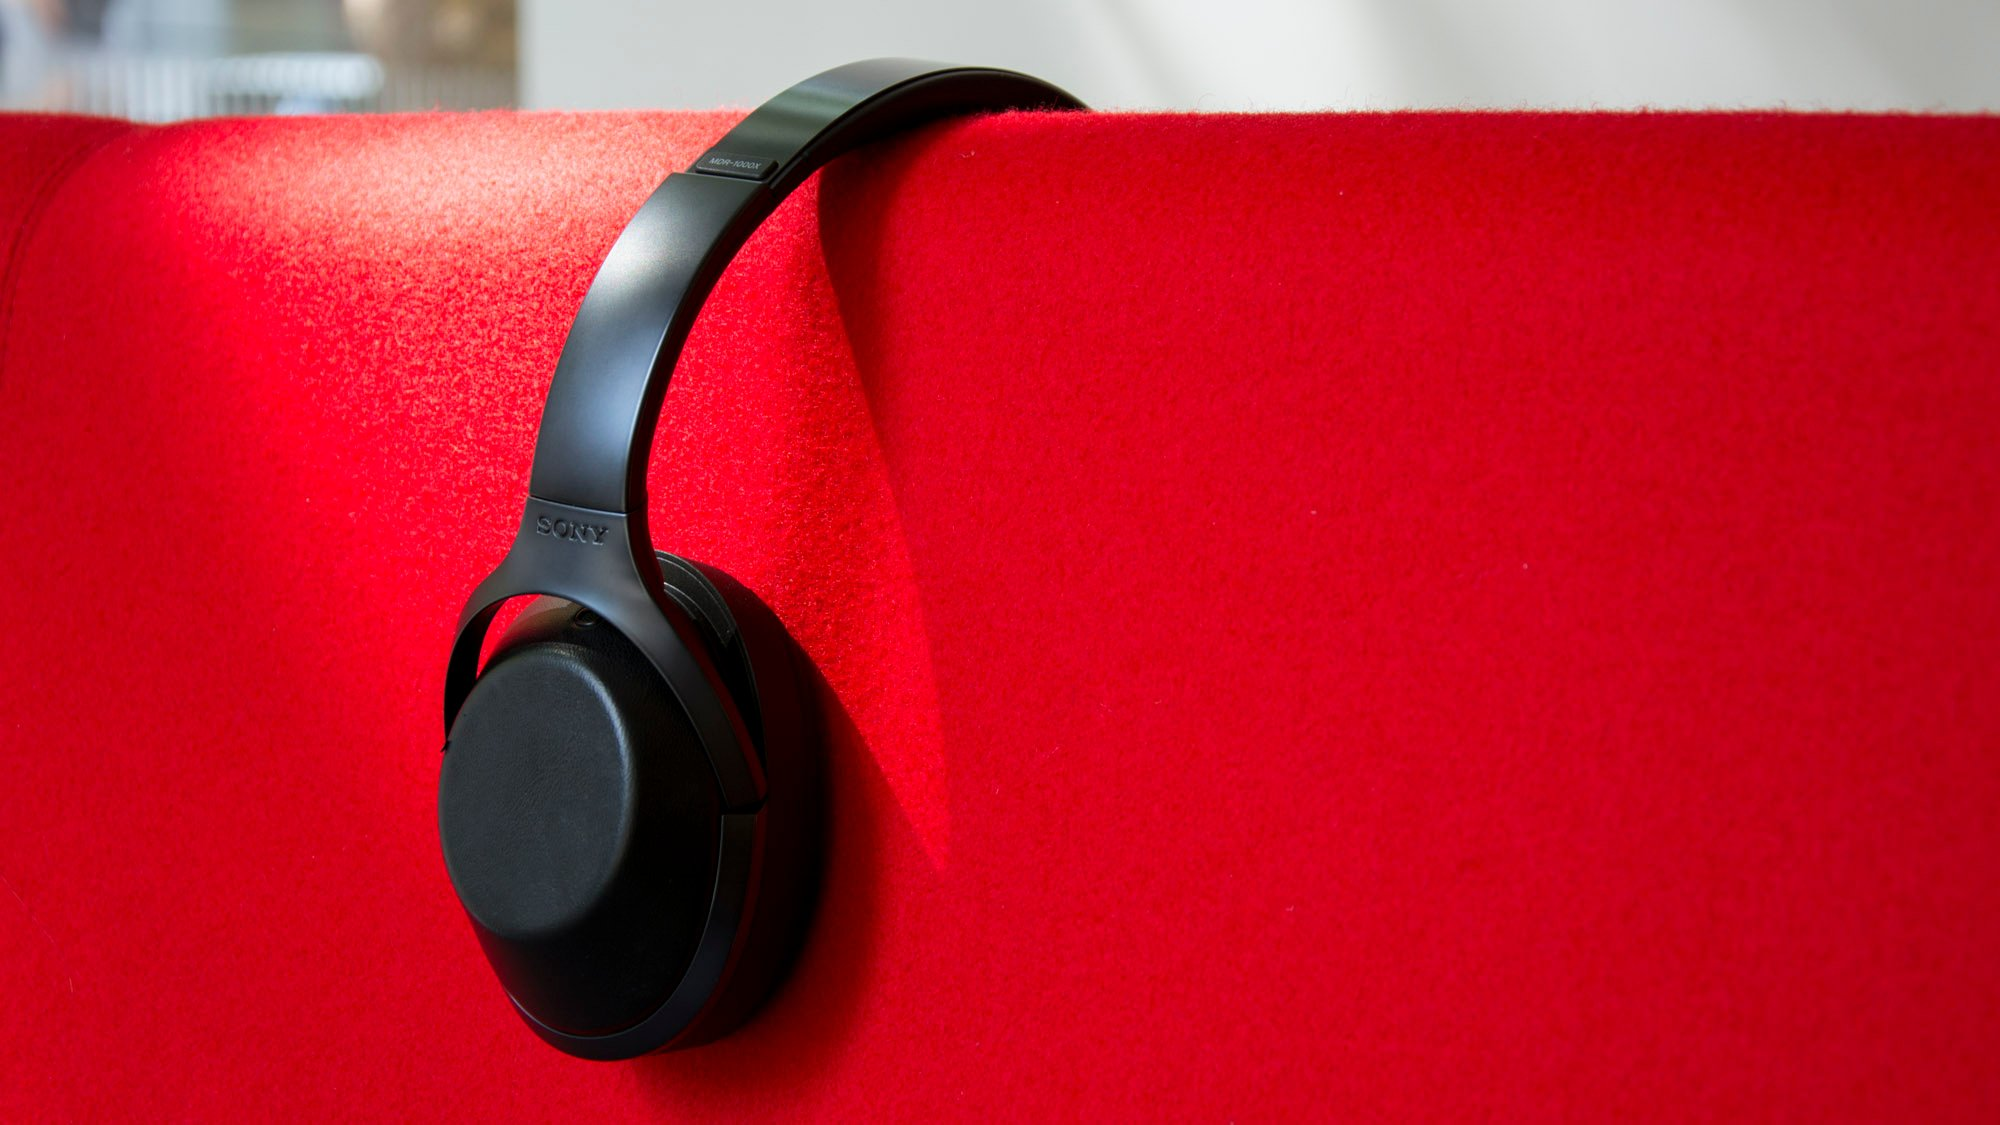 Sony Mdr 1000x Review Now Replaced By The Wh 1000xm2 Expert Reviews Noice Cancelling Bluetooth Headphone